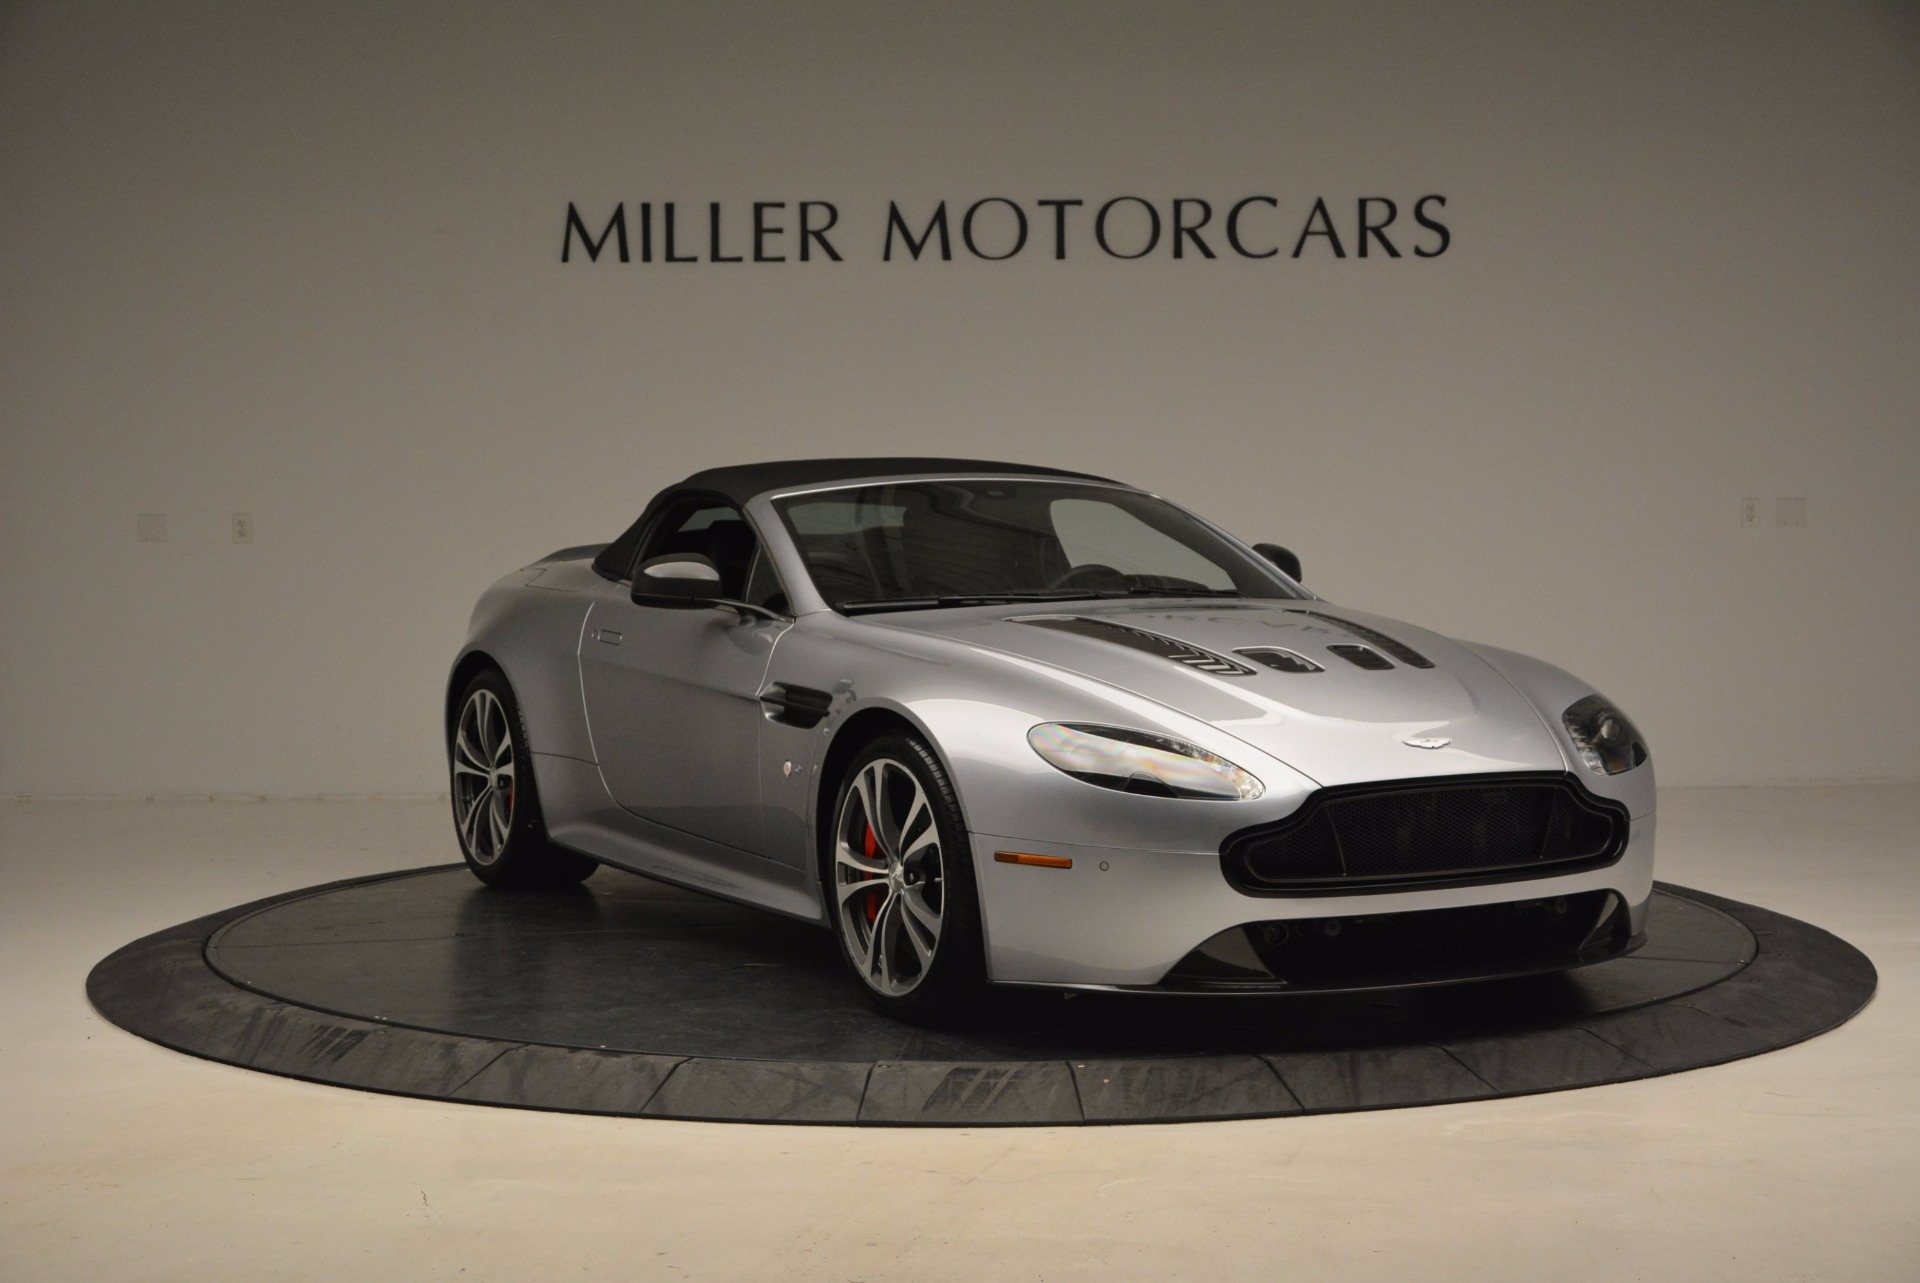 Used 2015 Aston Martin V12 Vantage S Roadster For Sale In Greenwich, CT. Alfa Romeo of Greenwich, 7197 1130_p23